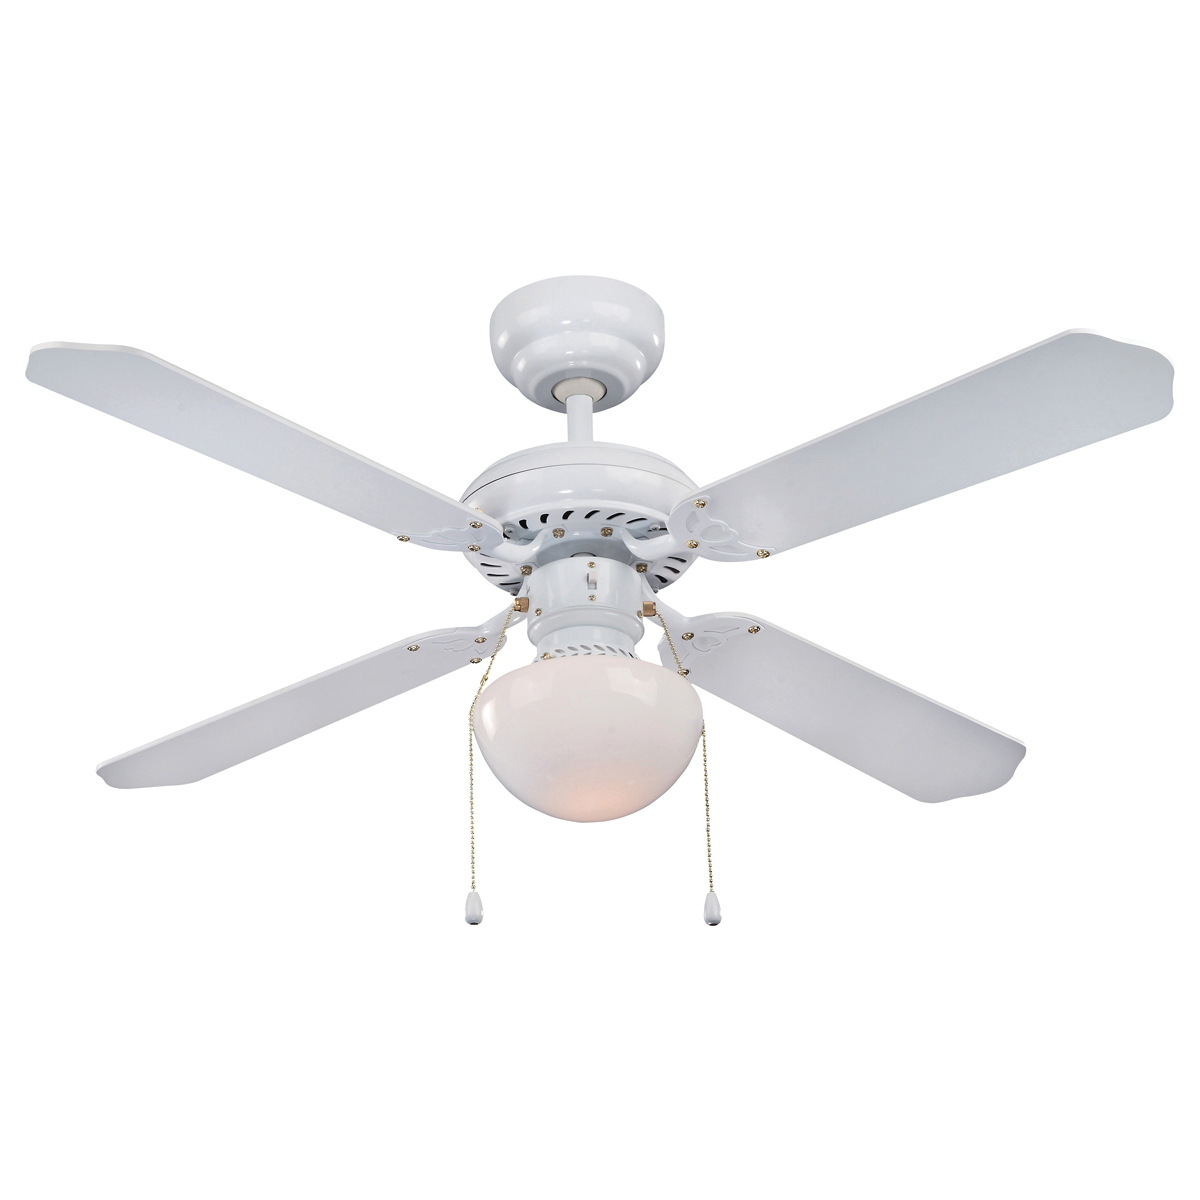 Picture of Boston Harbor CF-78133 Ceiling Fan, 4-Blade, 42 in Sweep, White Housing